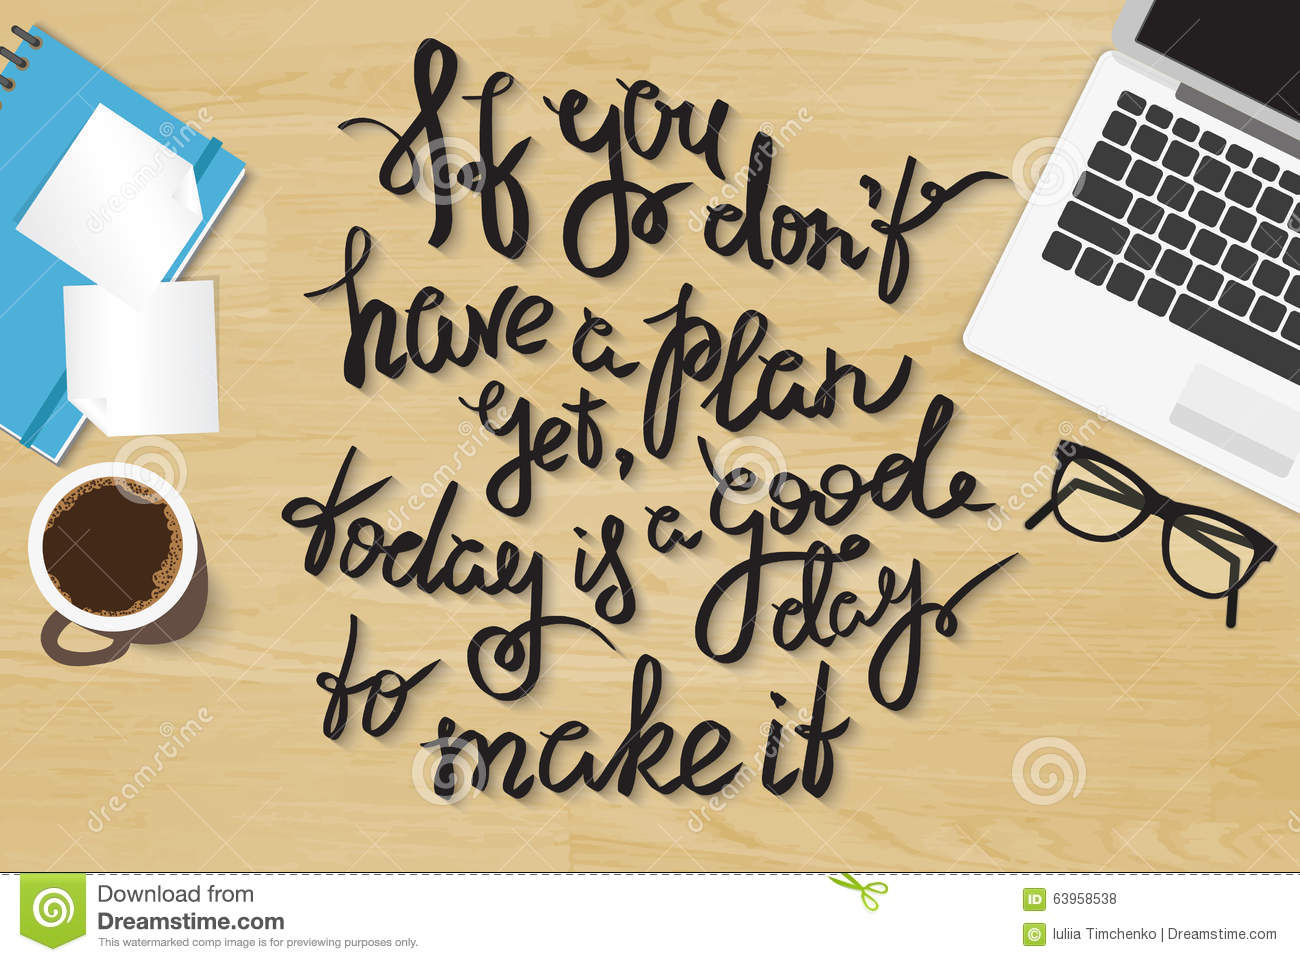 If you do not have plan yet today is a good day to stock for How to make a good planner